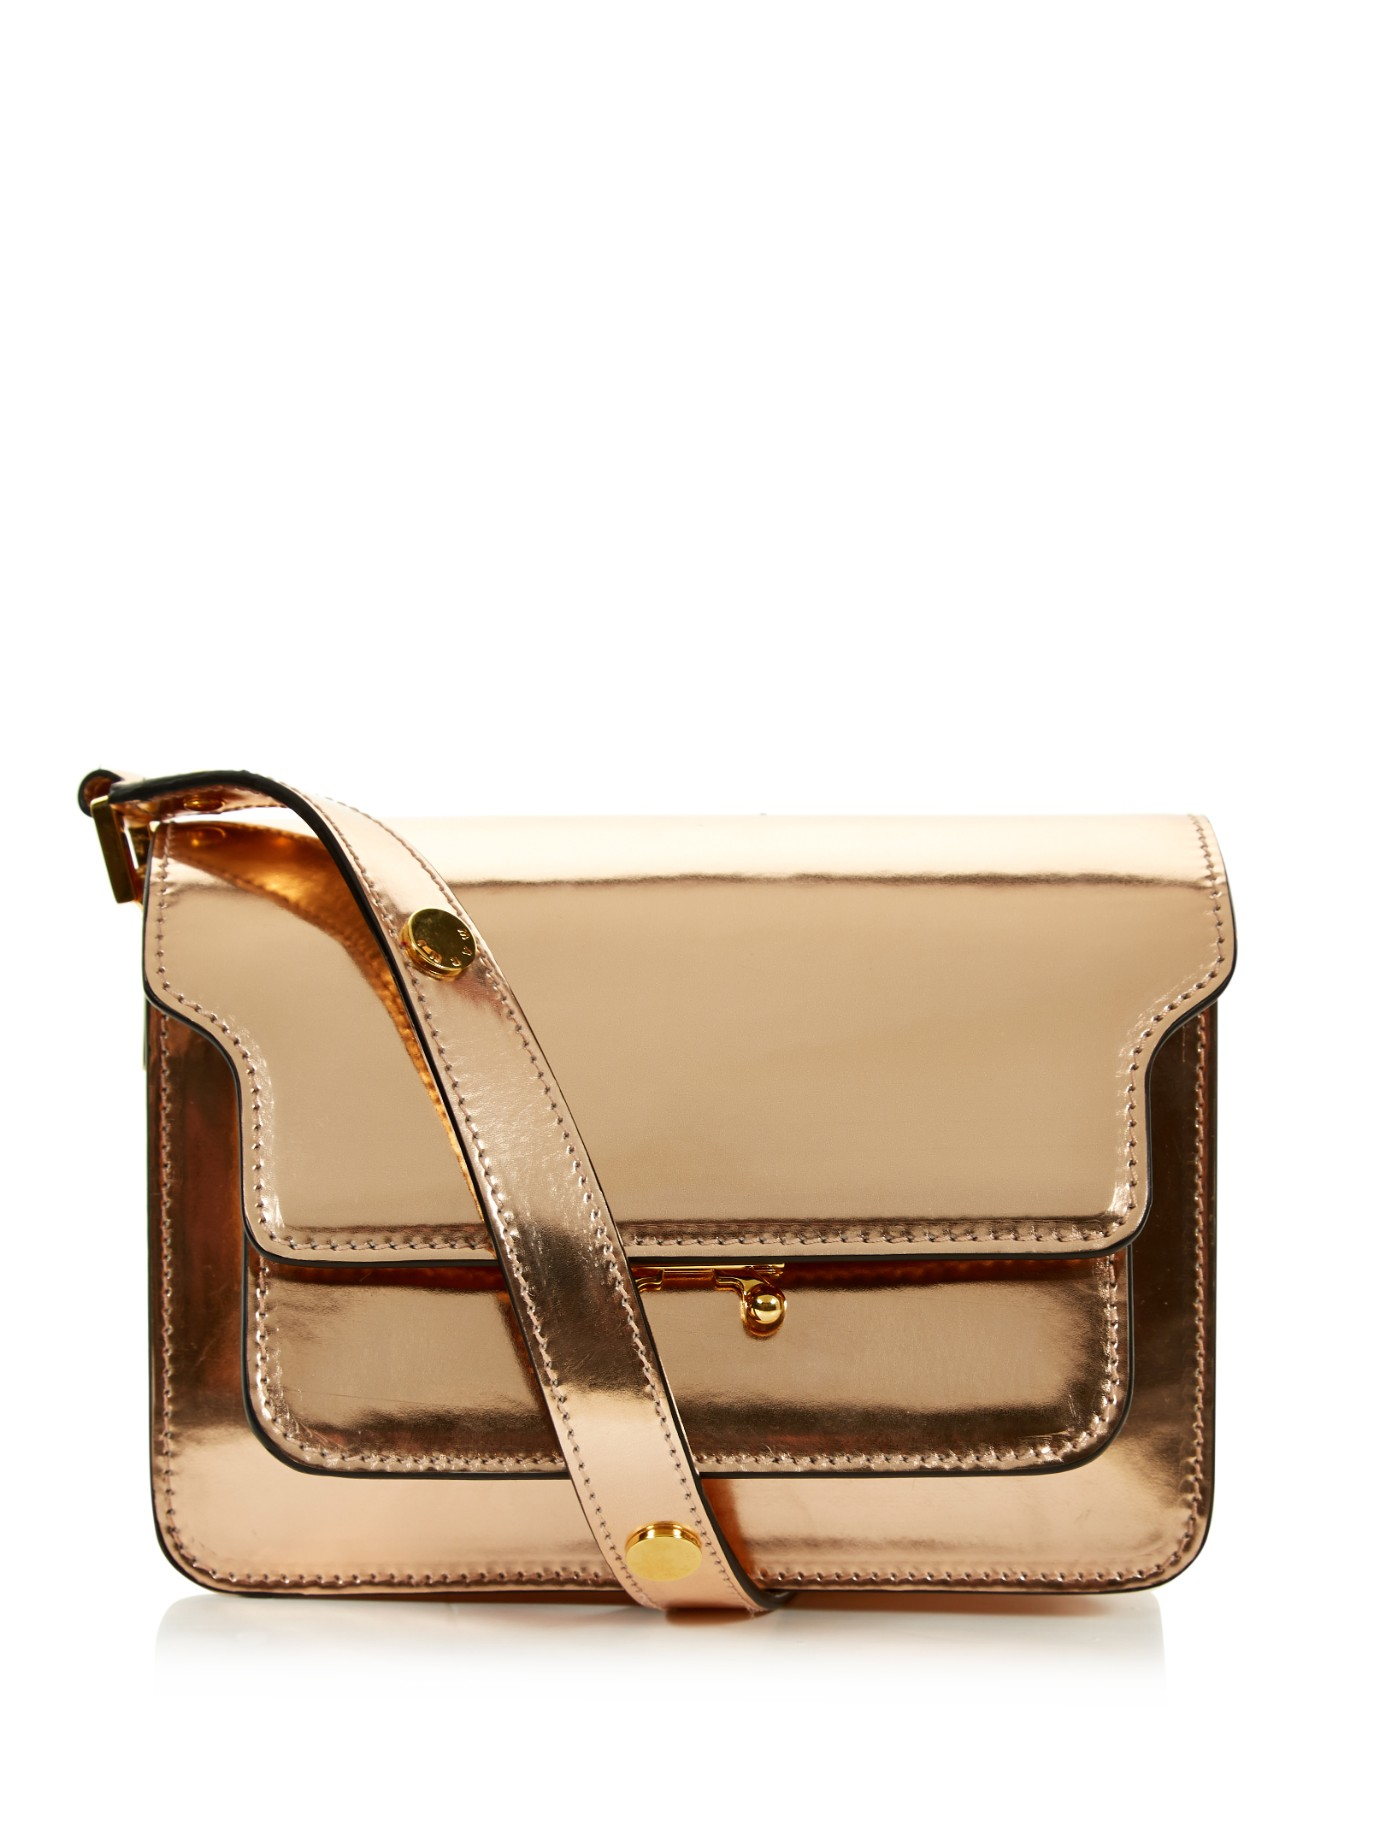 Marni Trunk Mini Leather Shoulder Bag in Pink | Lyst